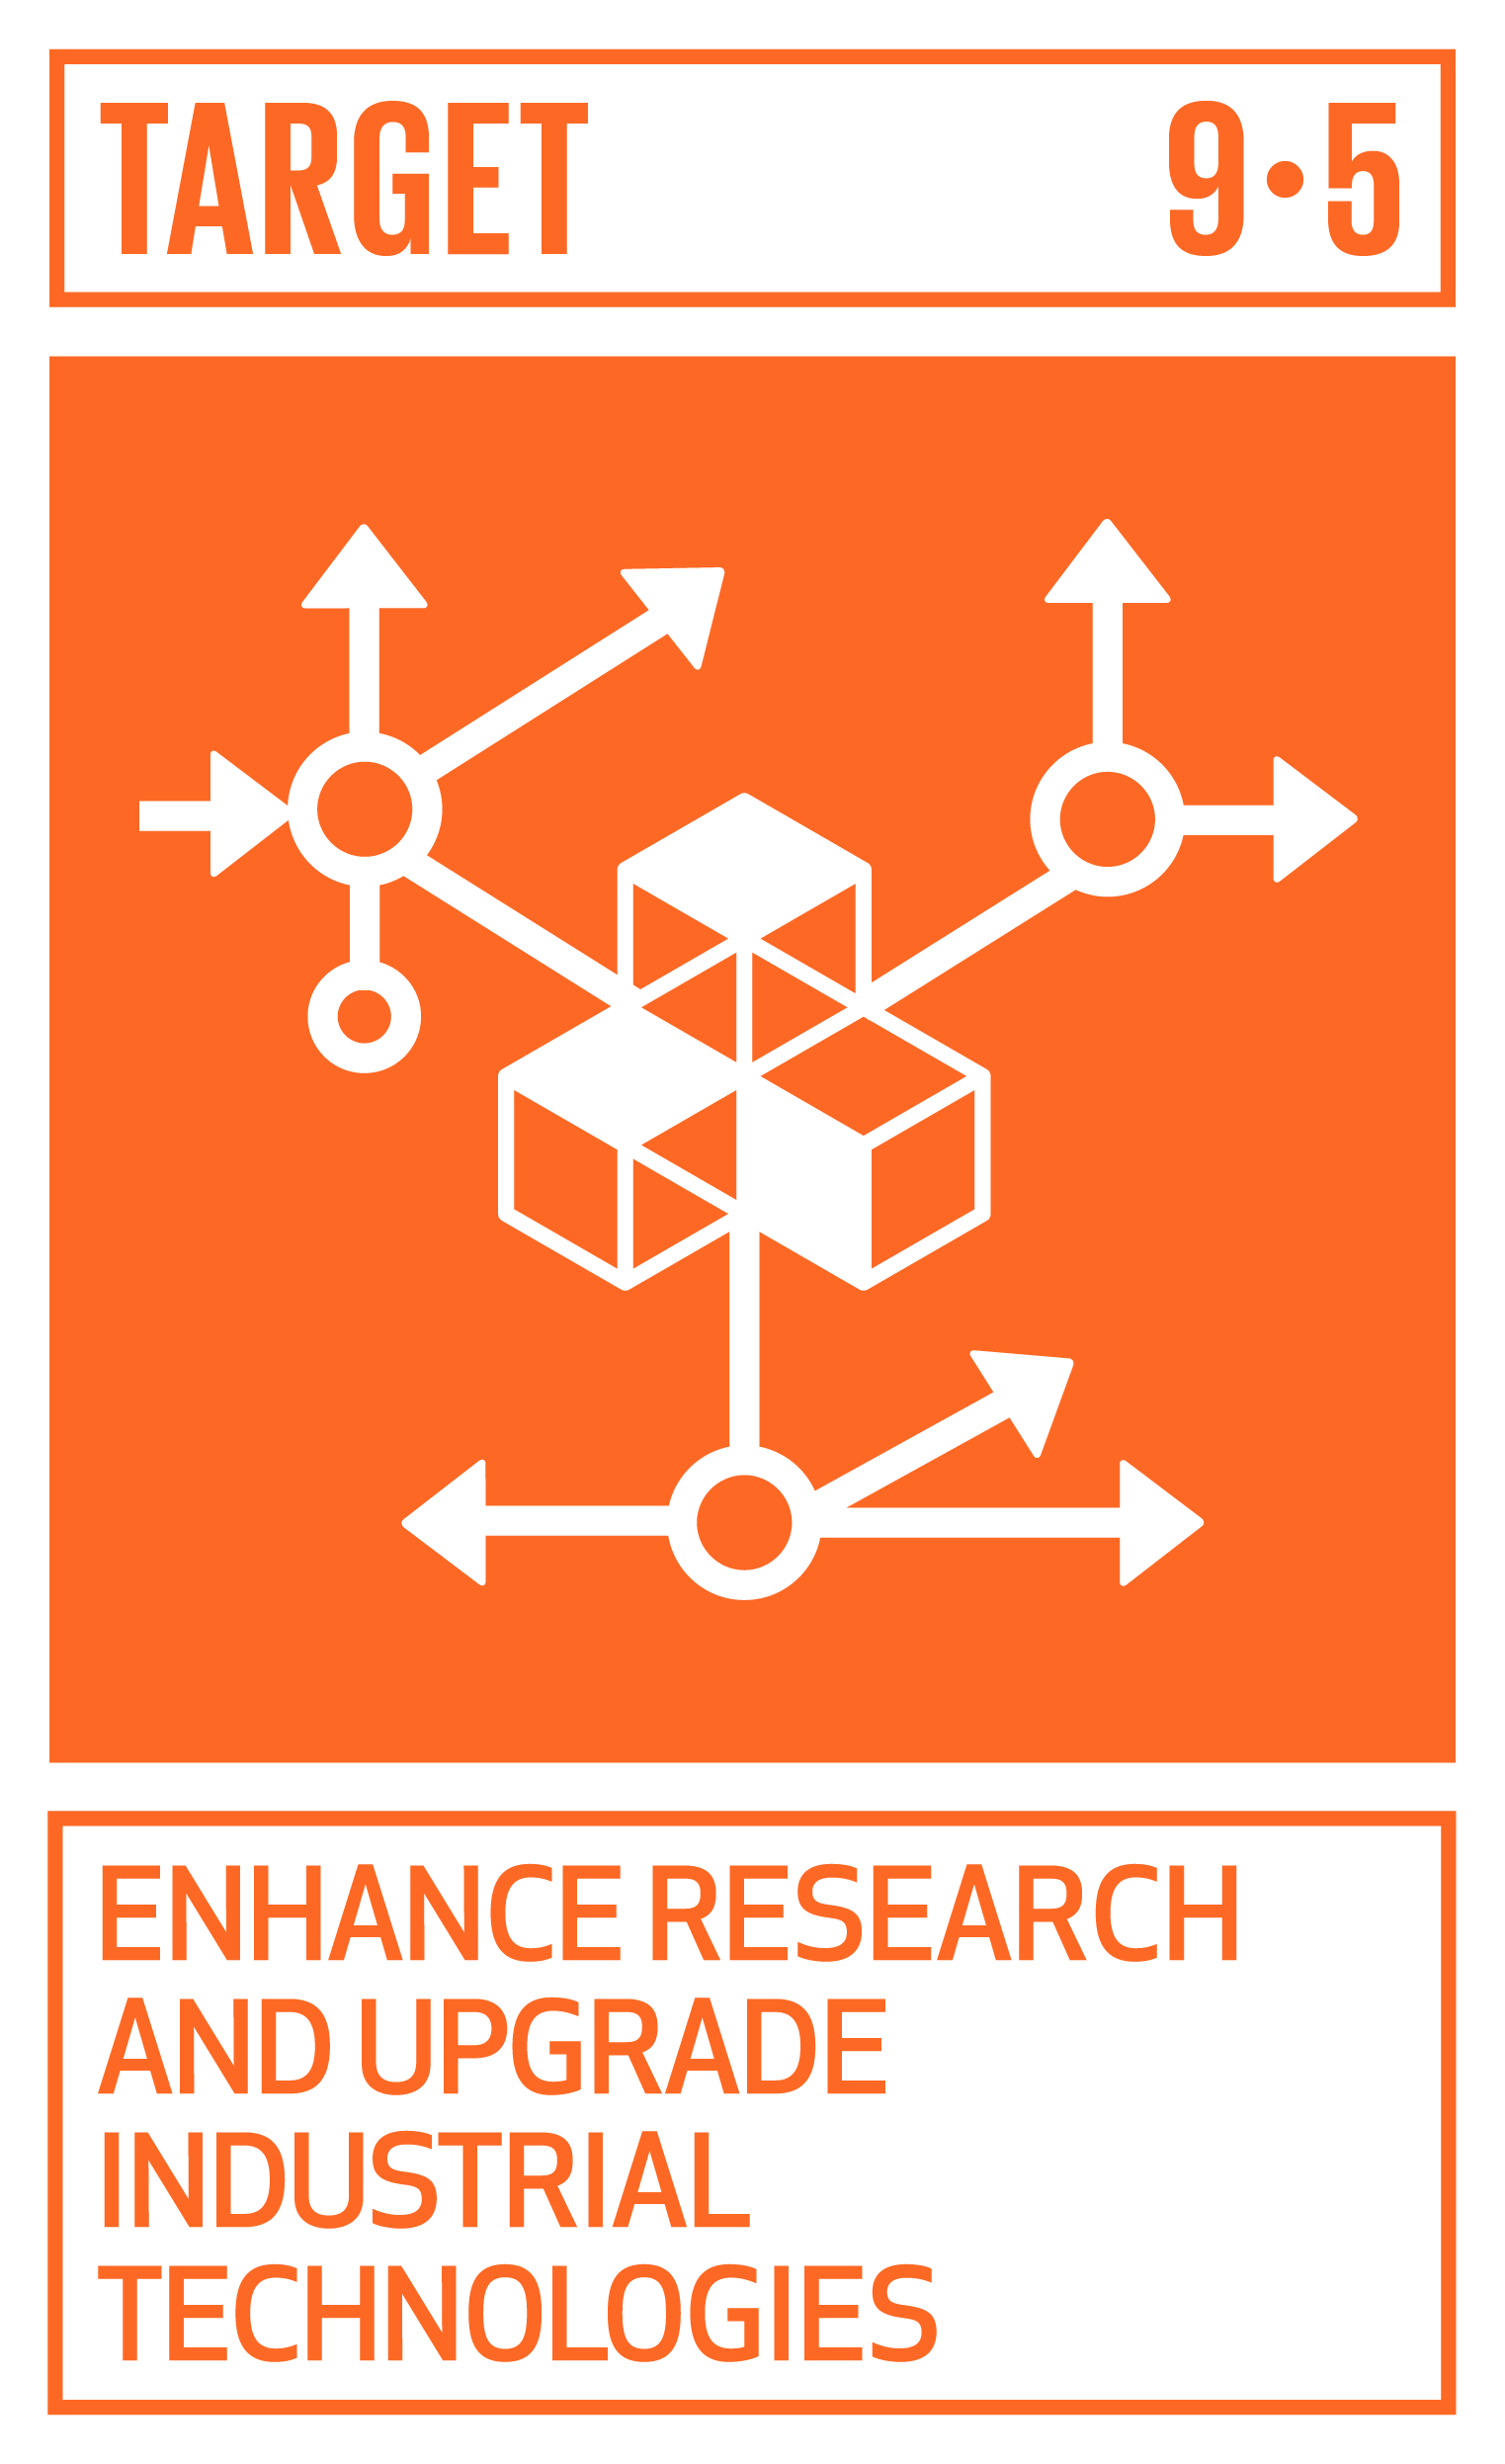 Enhance scientific research, upgrade the technological capabilities of industrial sectors in all countries, in particular developing countries, including, by 2030, encouraging innovation and substantially increasing the number of research and development workers per 1 million people and public and private research and development spending.   INDICATORS    9.5.1  Research and development expenditure as a proportion of GDP   9.5.2  Researchers (in full-time equivalent) per million inhabitants